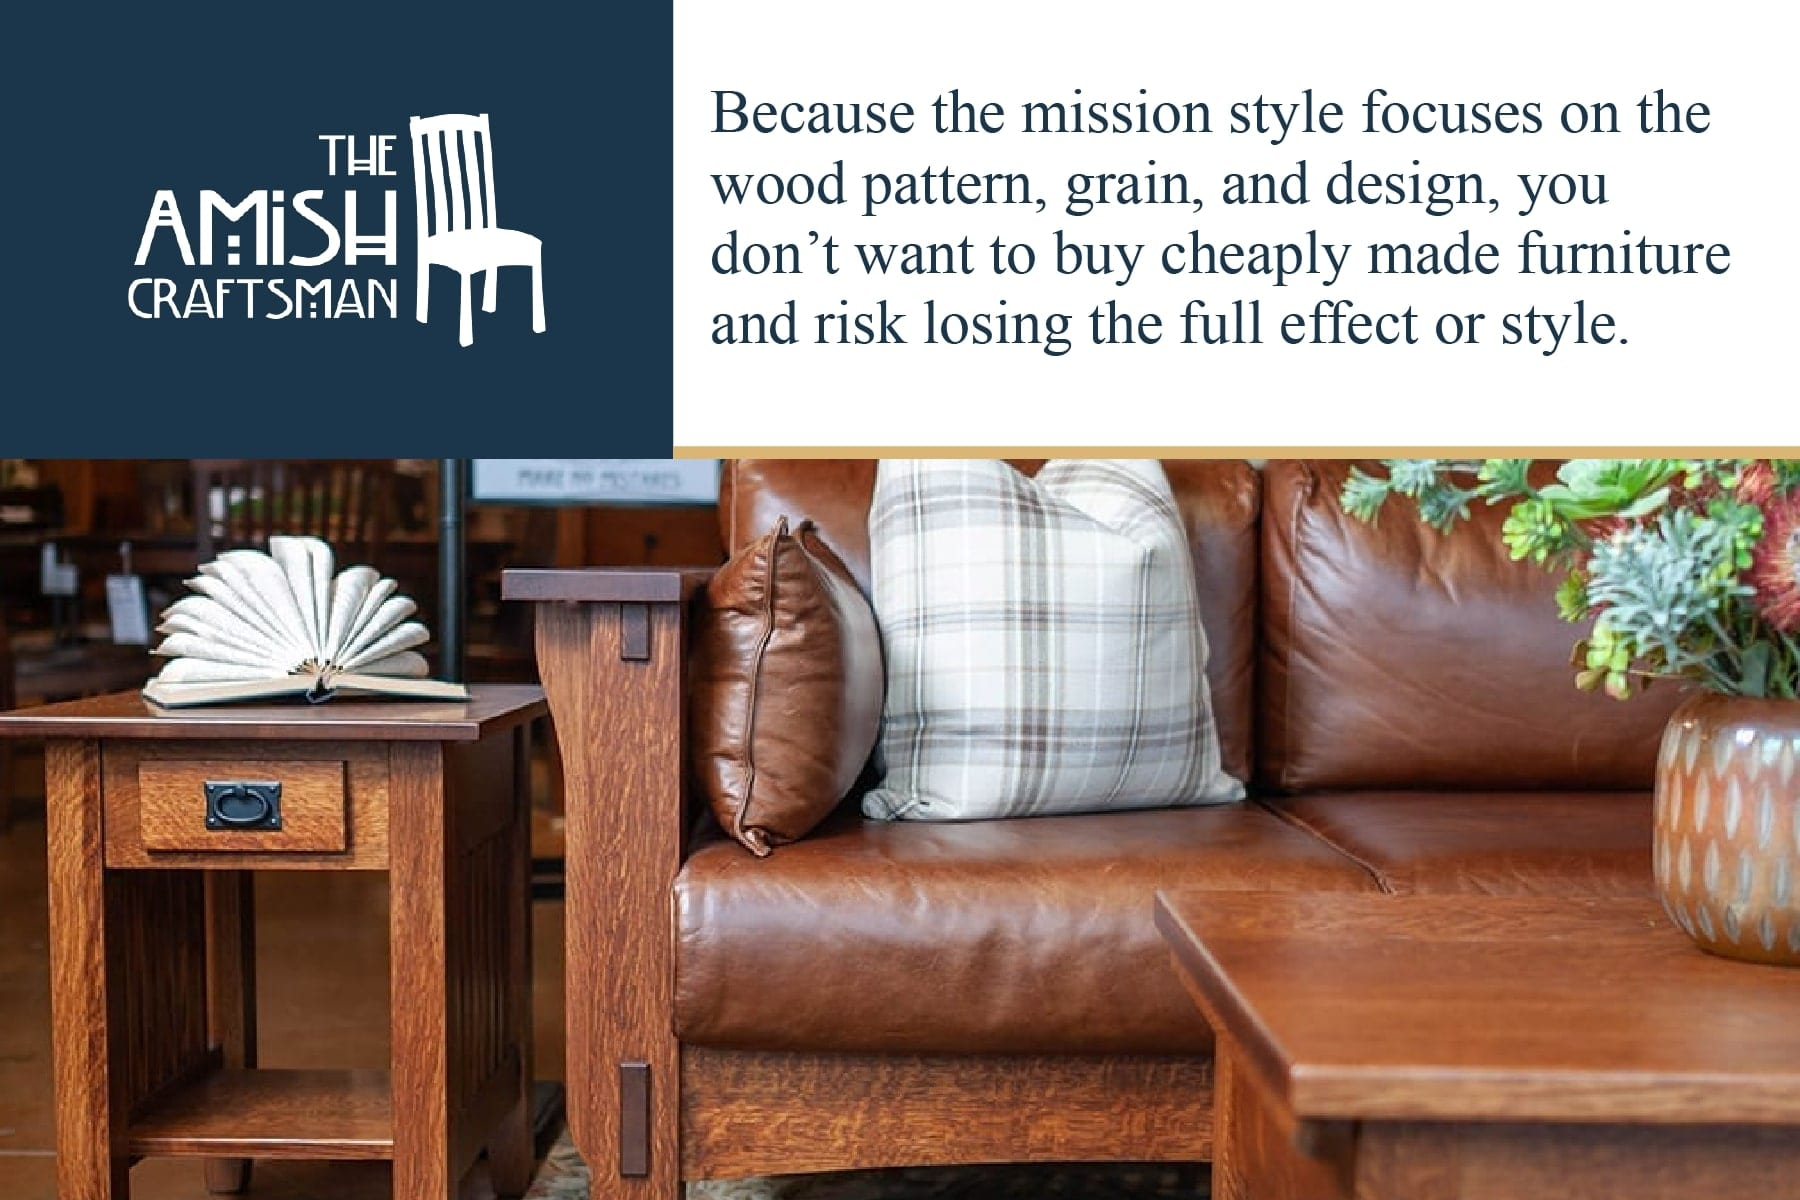 the mission style focuses on wood pattern, grain, and design